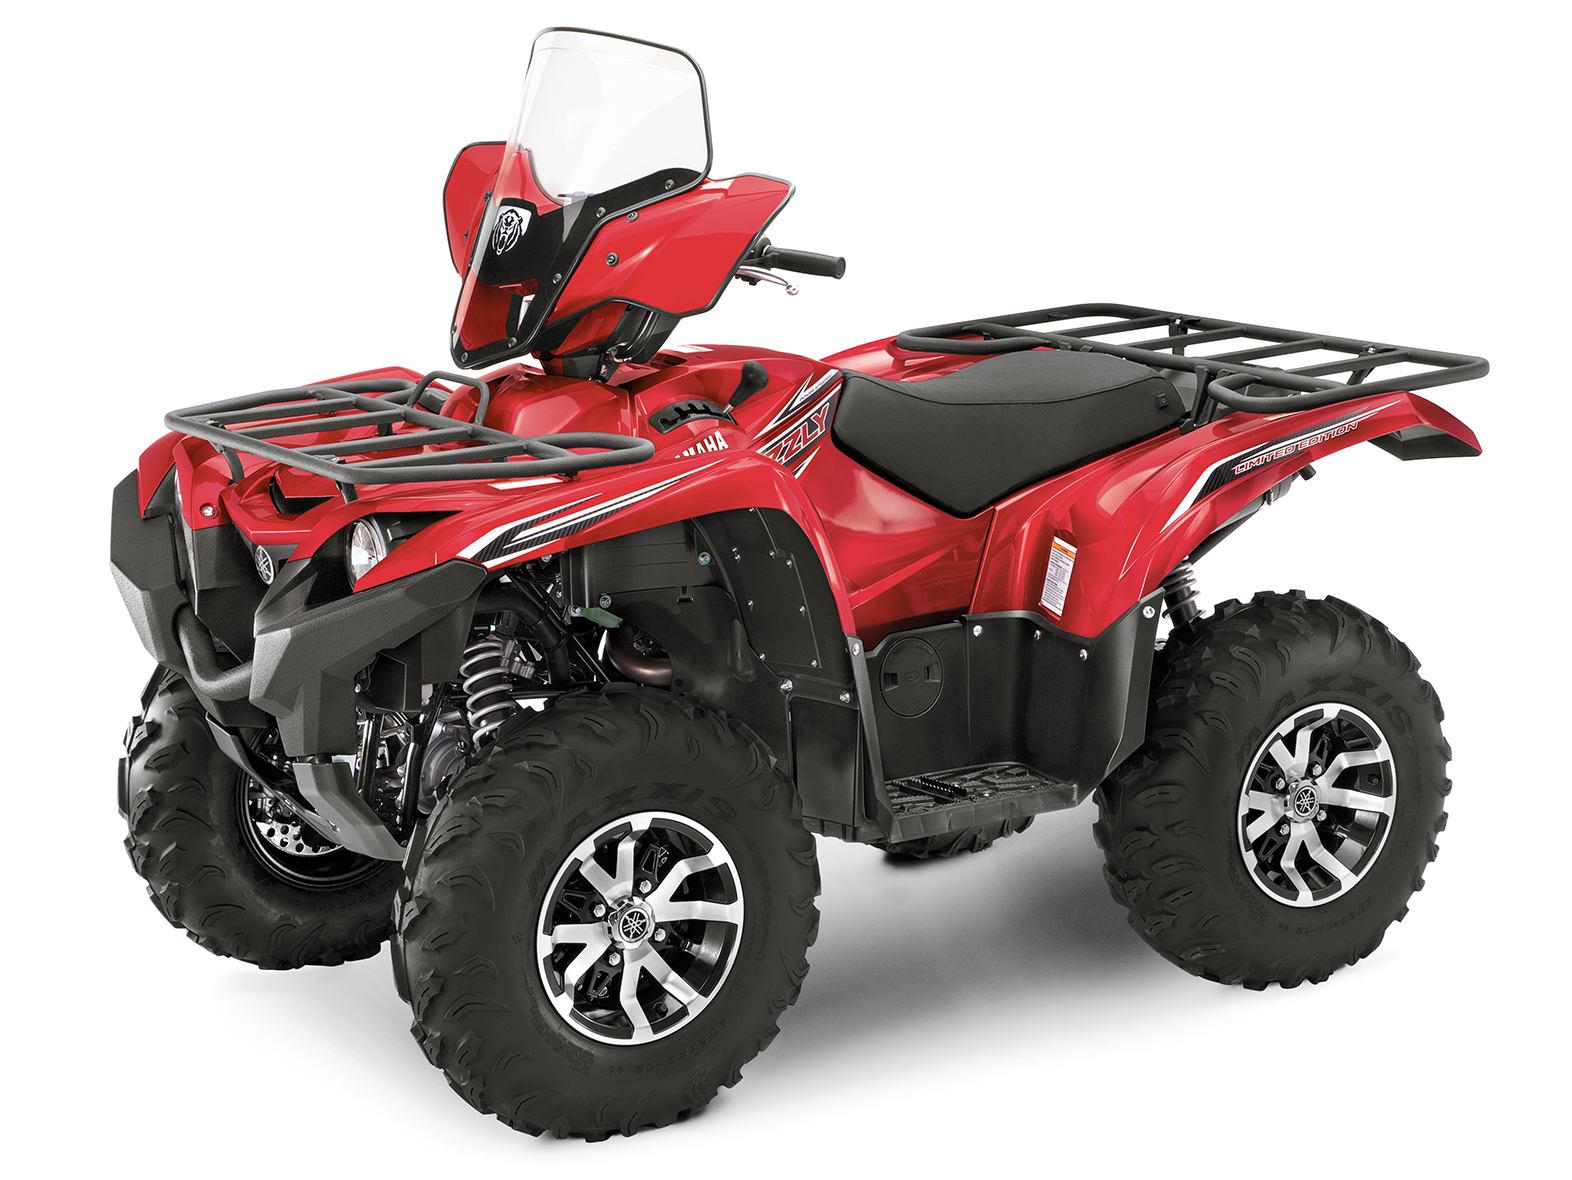 yamaha introduces 2016 grizzly eps 4x4 atv. Black Bedroom Furniture Sets. Home Design Ideas